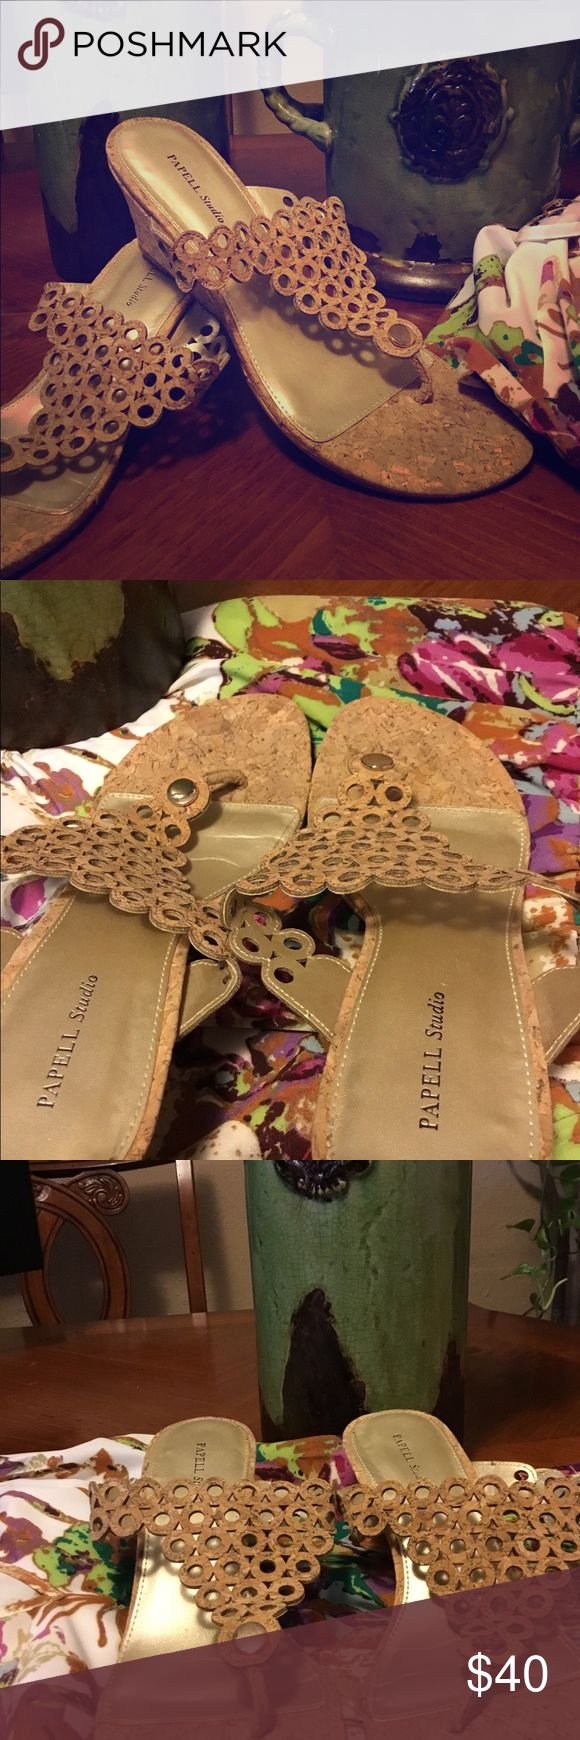 "Papell Studio tan wedge sandals 2"" inch tan calista wedge sandal with gold circle at toe 10/10 quality papell studio Shoes Wedges"